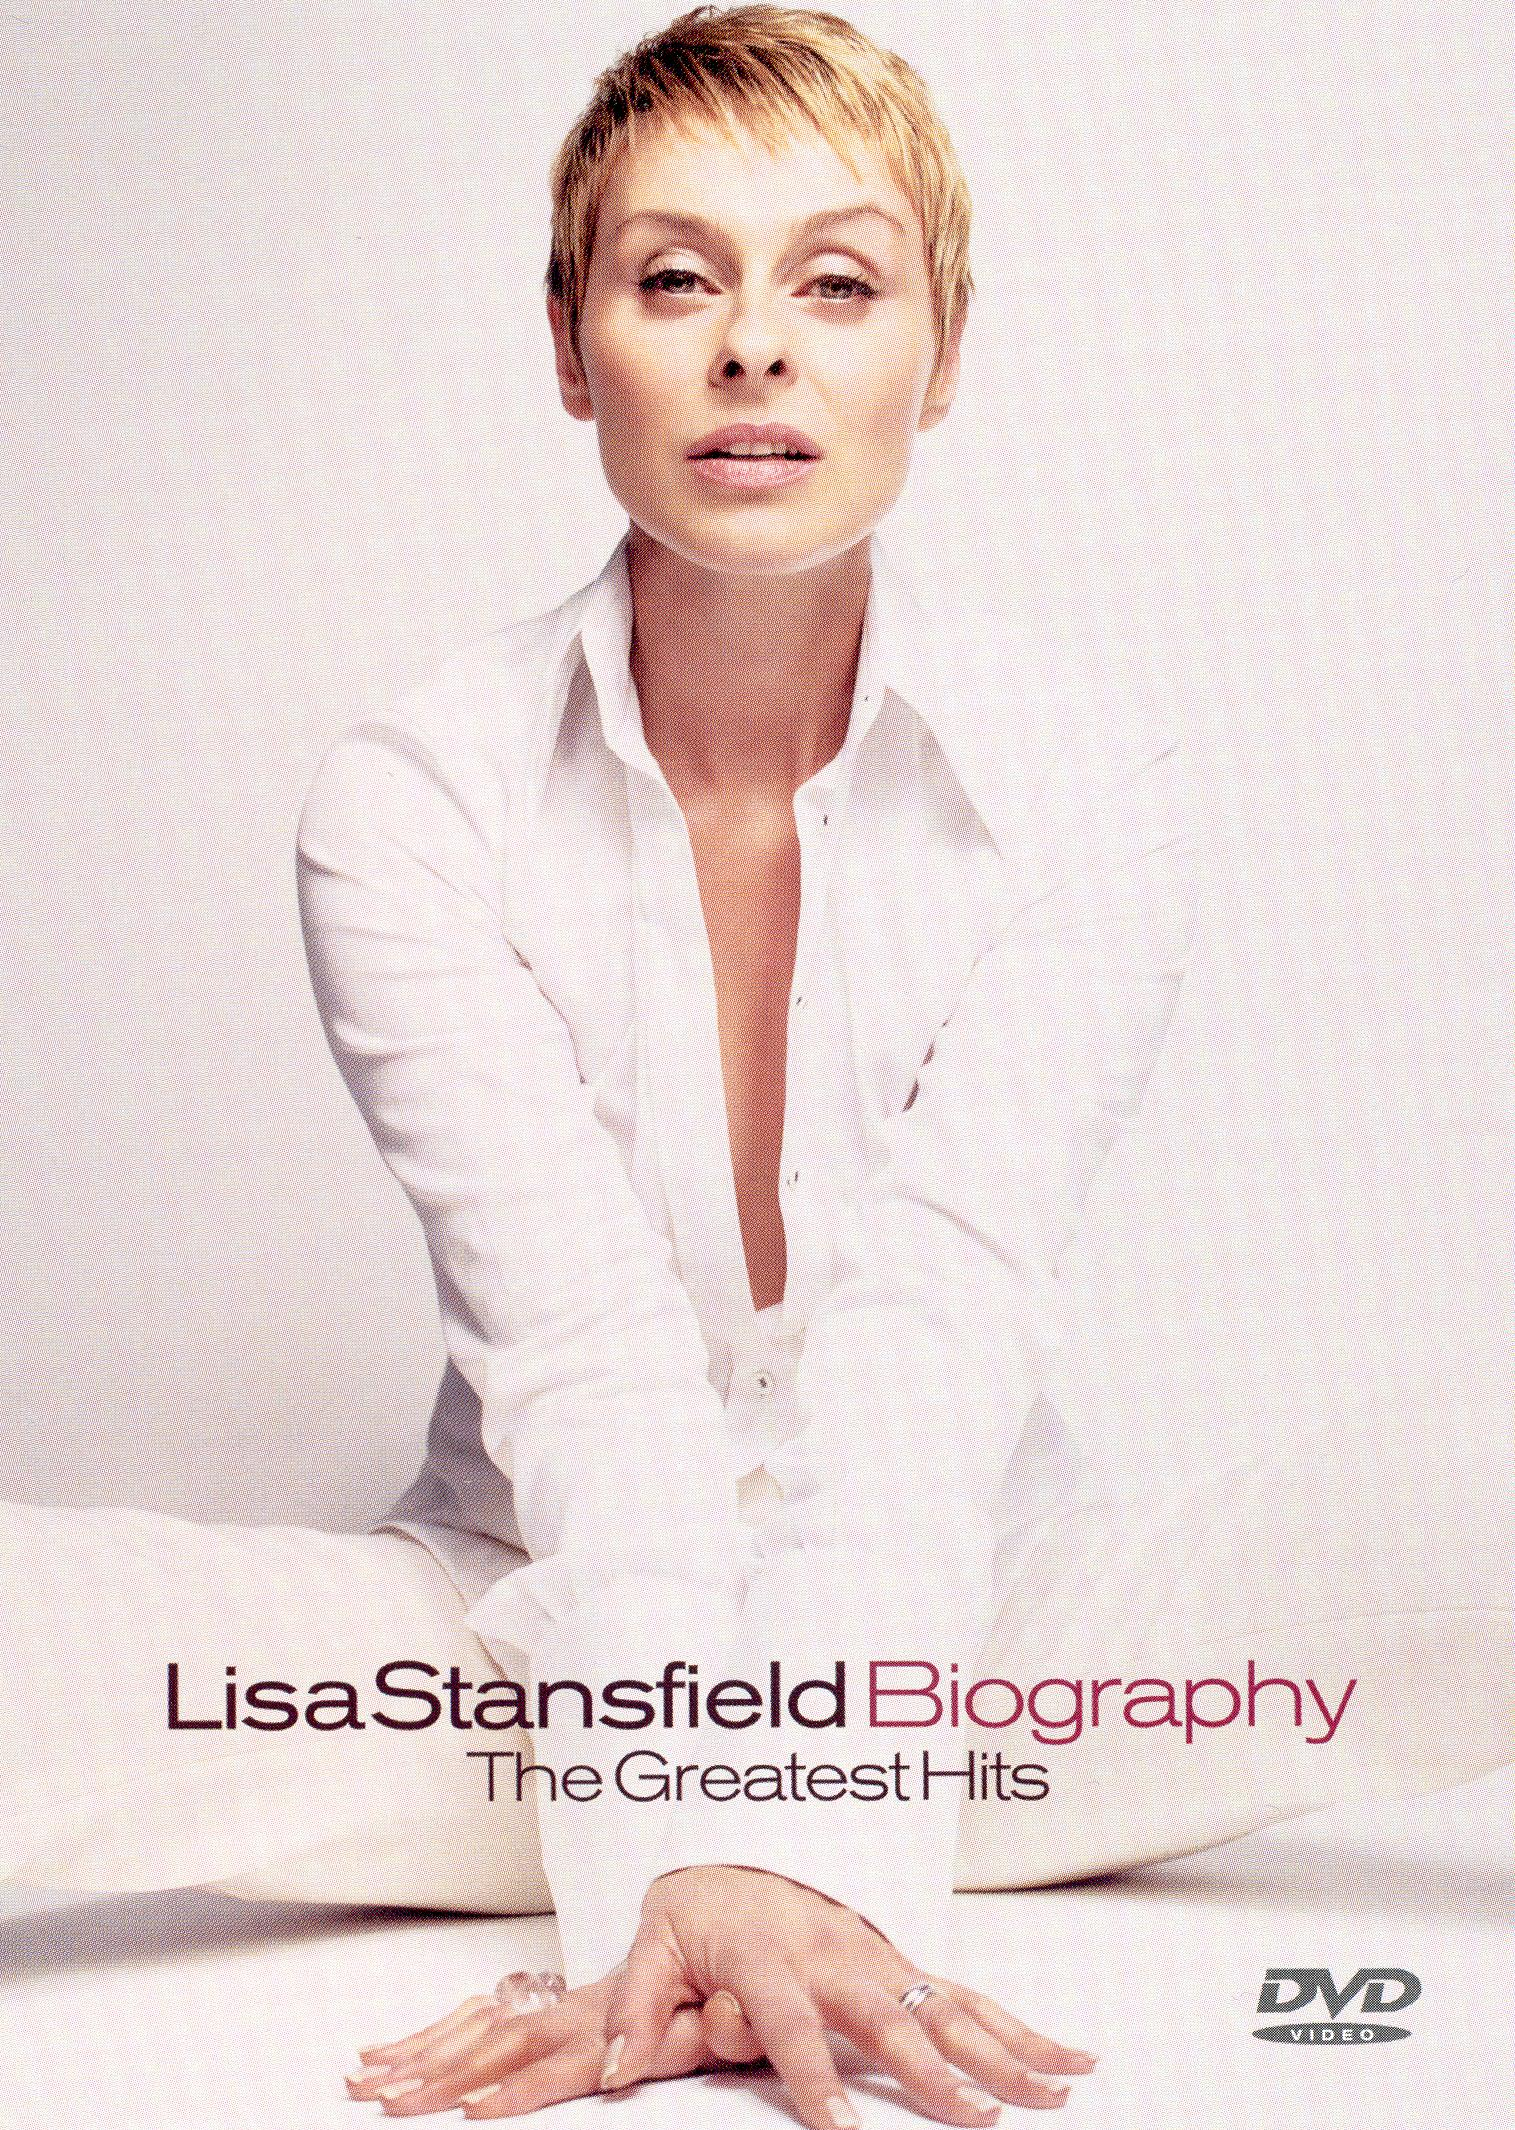 Lisa Stansfield: Biography - The Greatest Hits